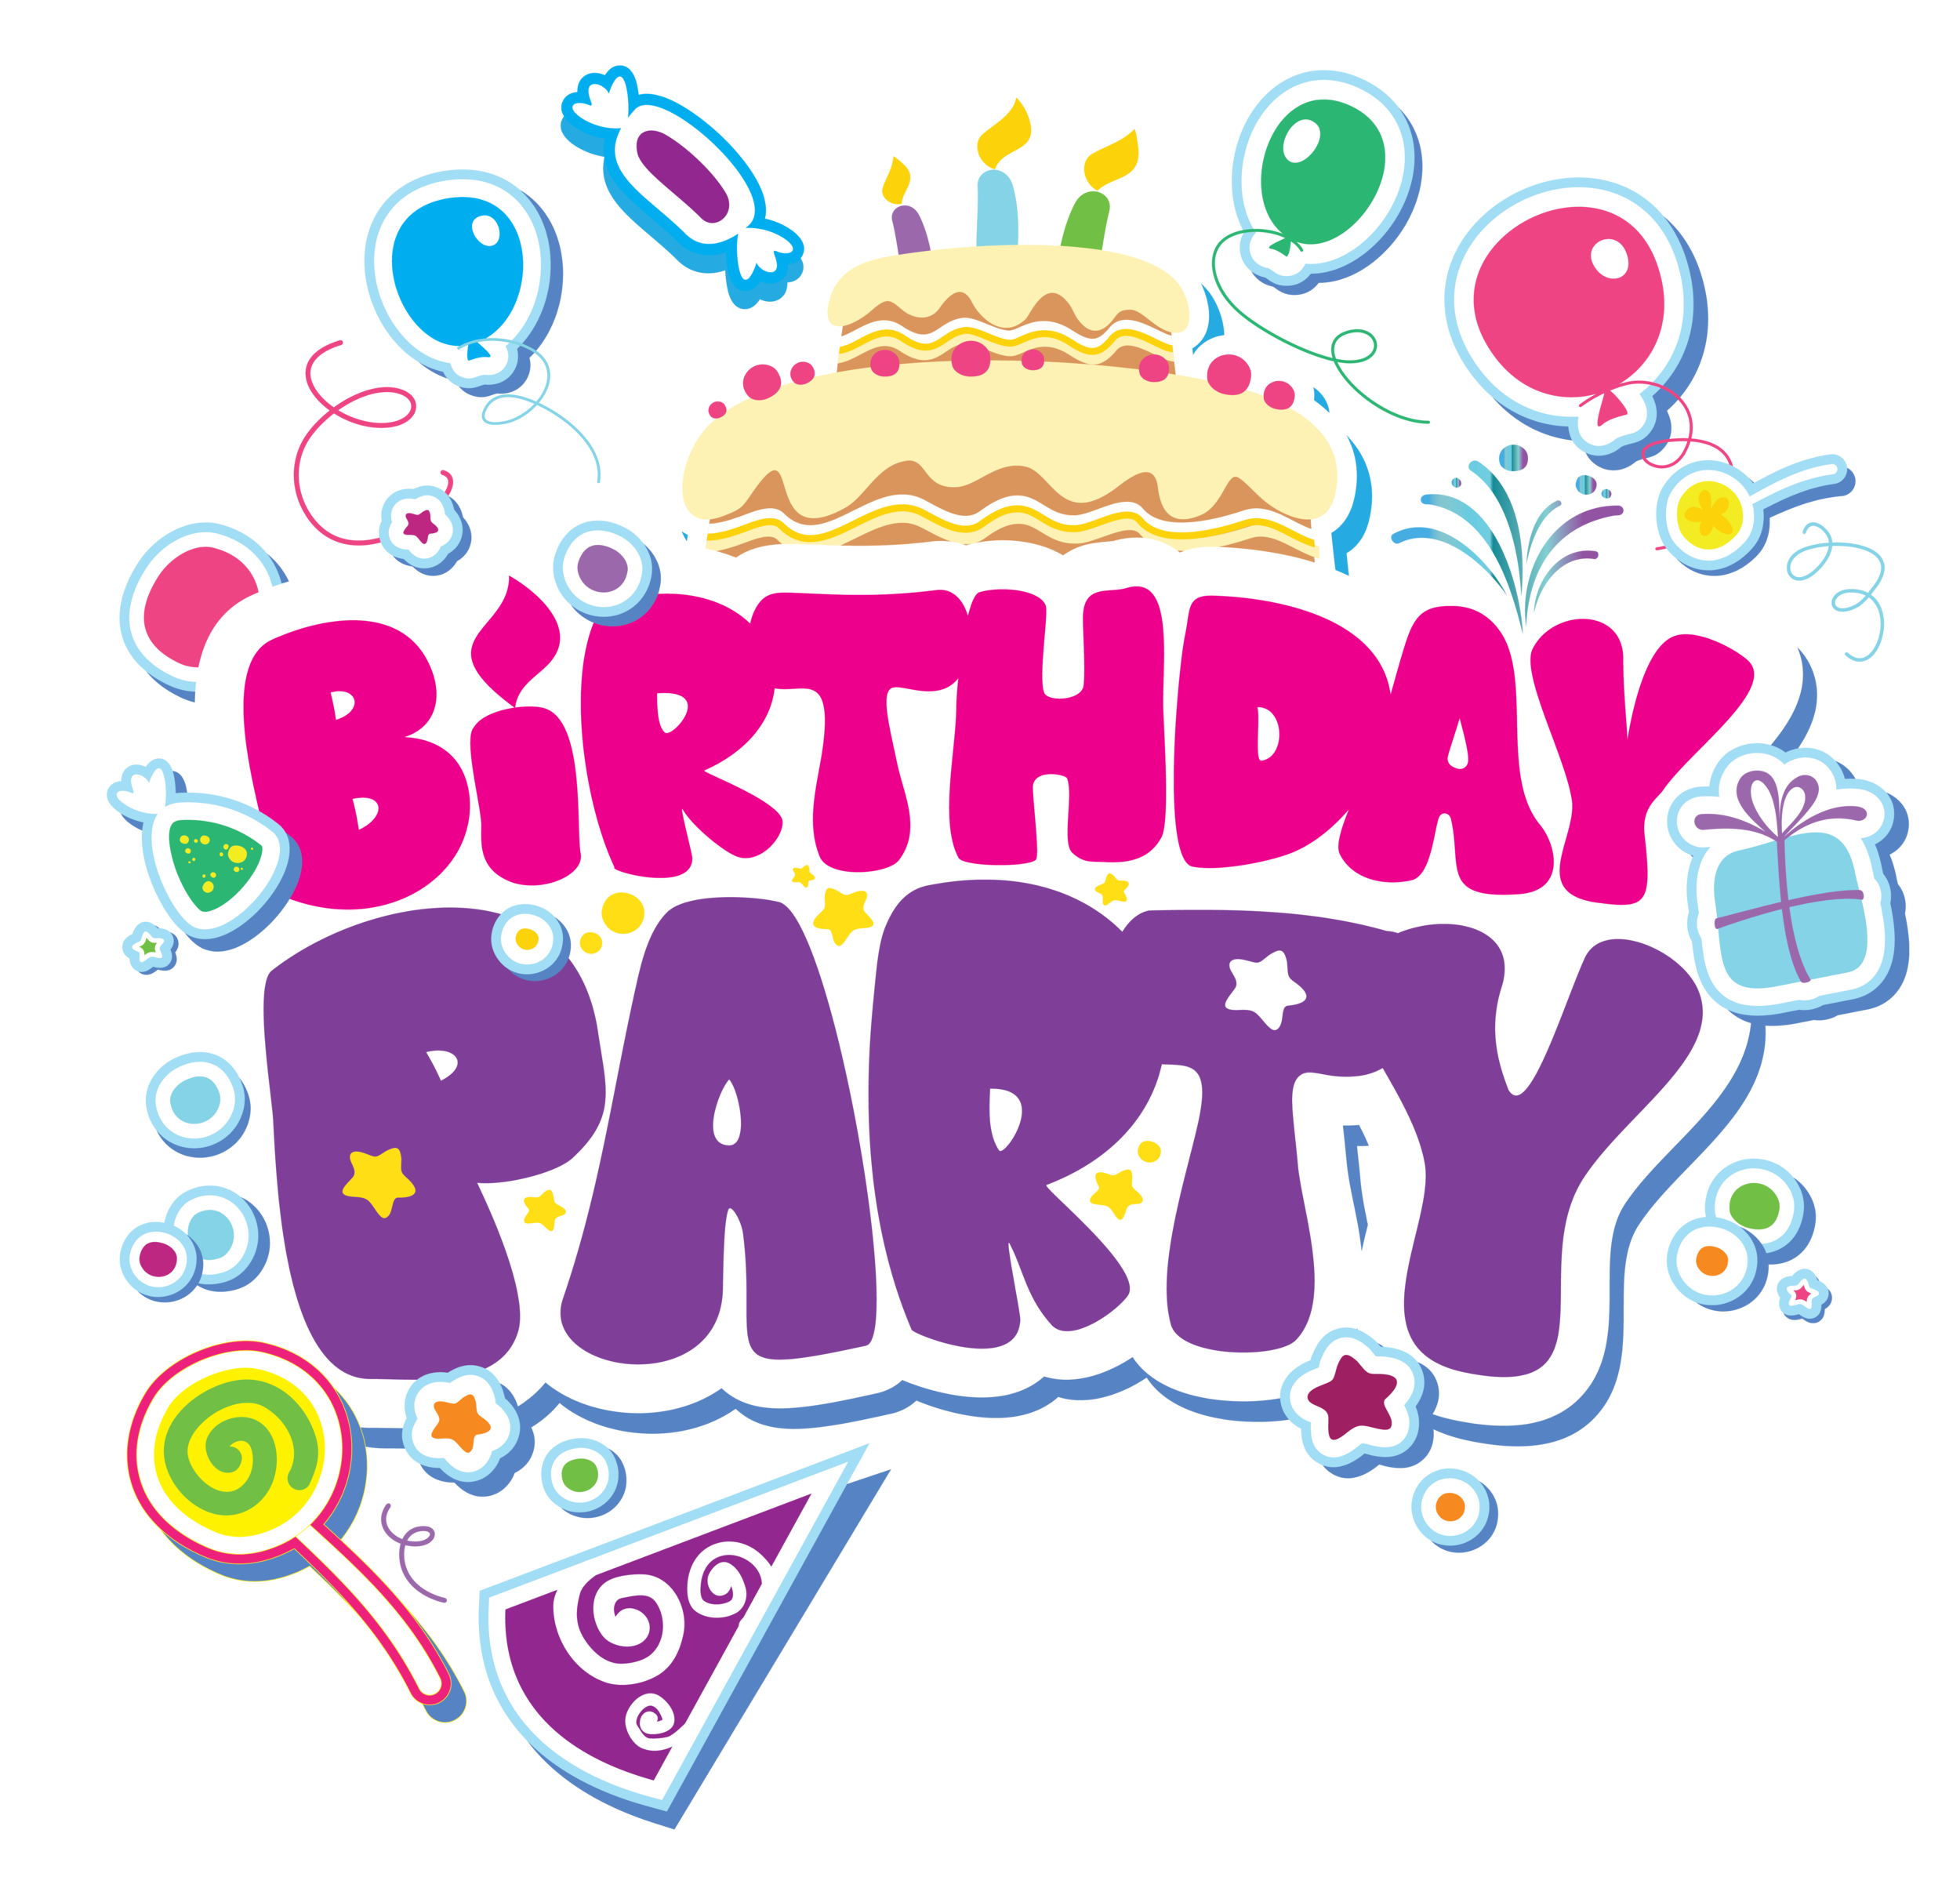 birthday-party-clipart-6.jpg.png